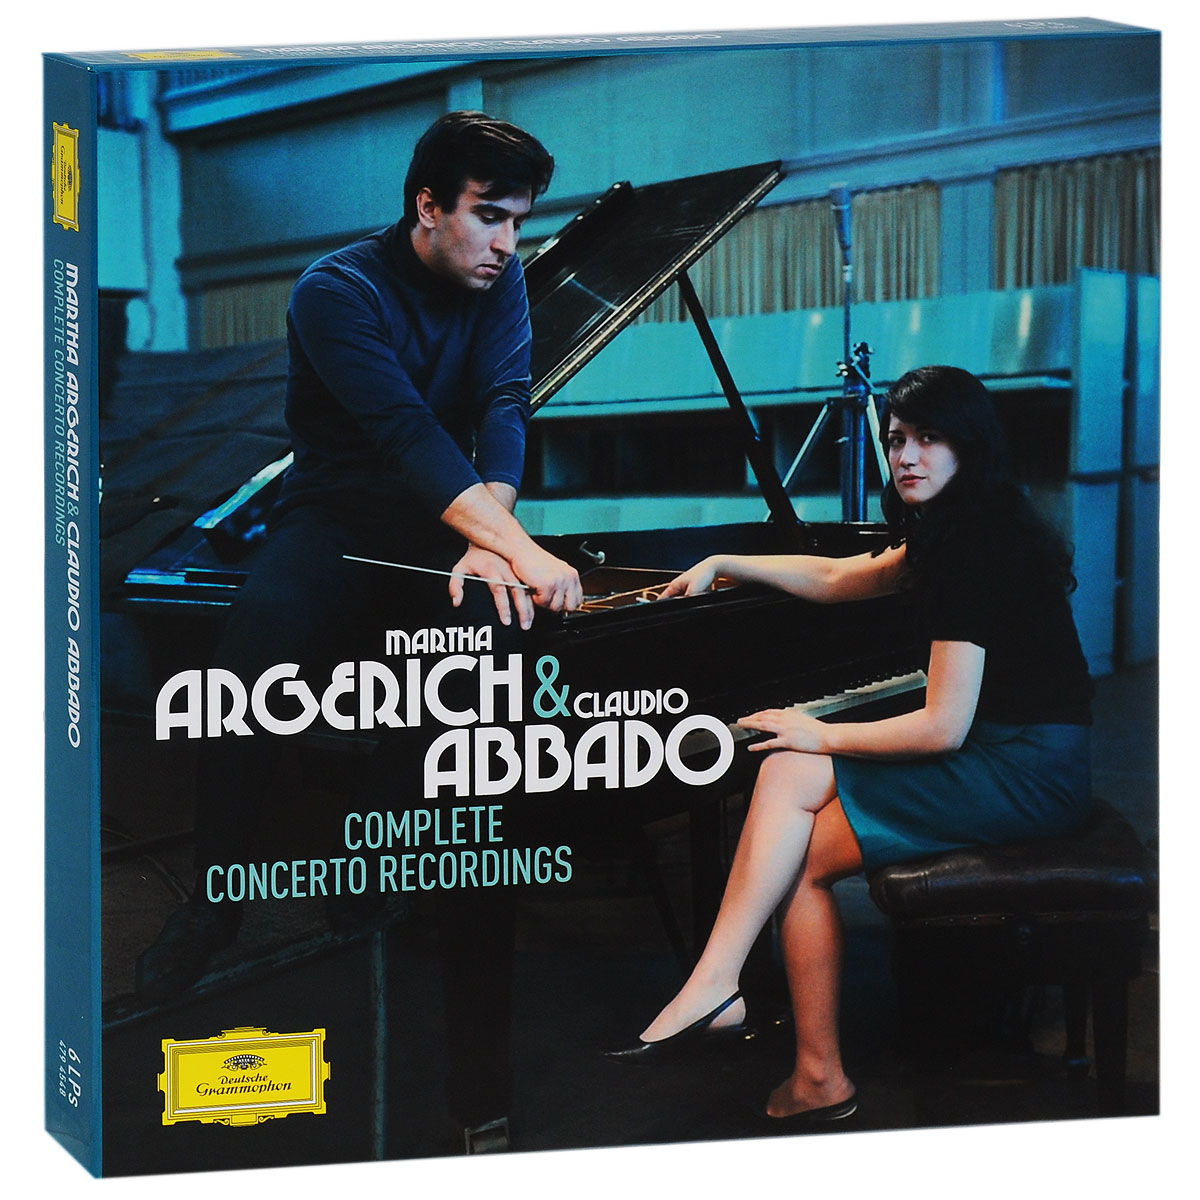 Марта Аргерих,Berliner Philharmoniker,Клаудио Аббадо,The London Symphony Orchestra,Mahler Chamber Orchestra,Orchestra Mozart Martha Argerich & Claudio Abbado. Complete Concerto Recordings. Limited Edition (6 LP) клаудио аббадо orchestra mozart claudio abbado schubert the great c major symphony 2 lp